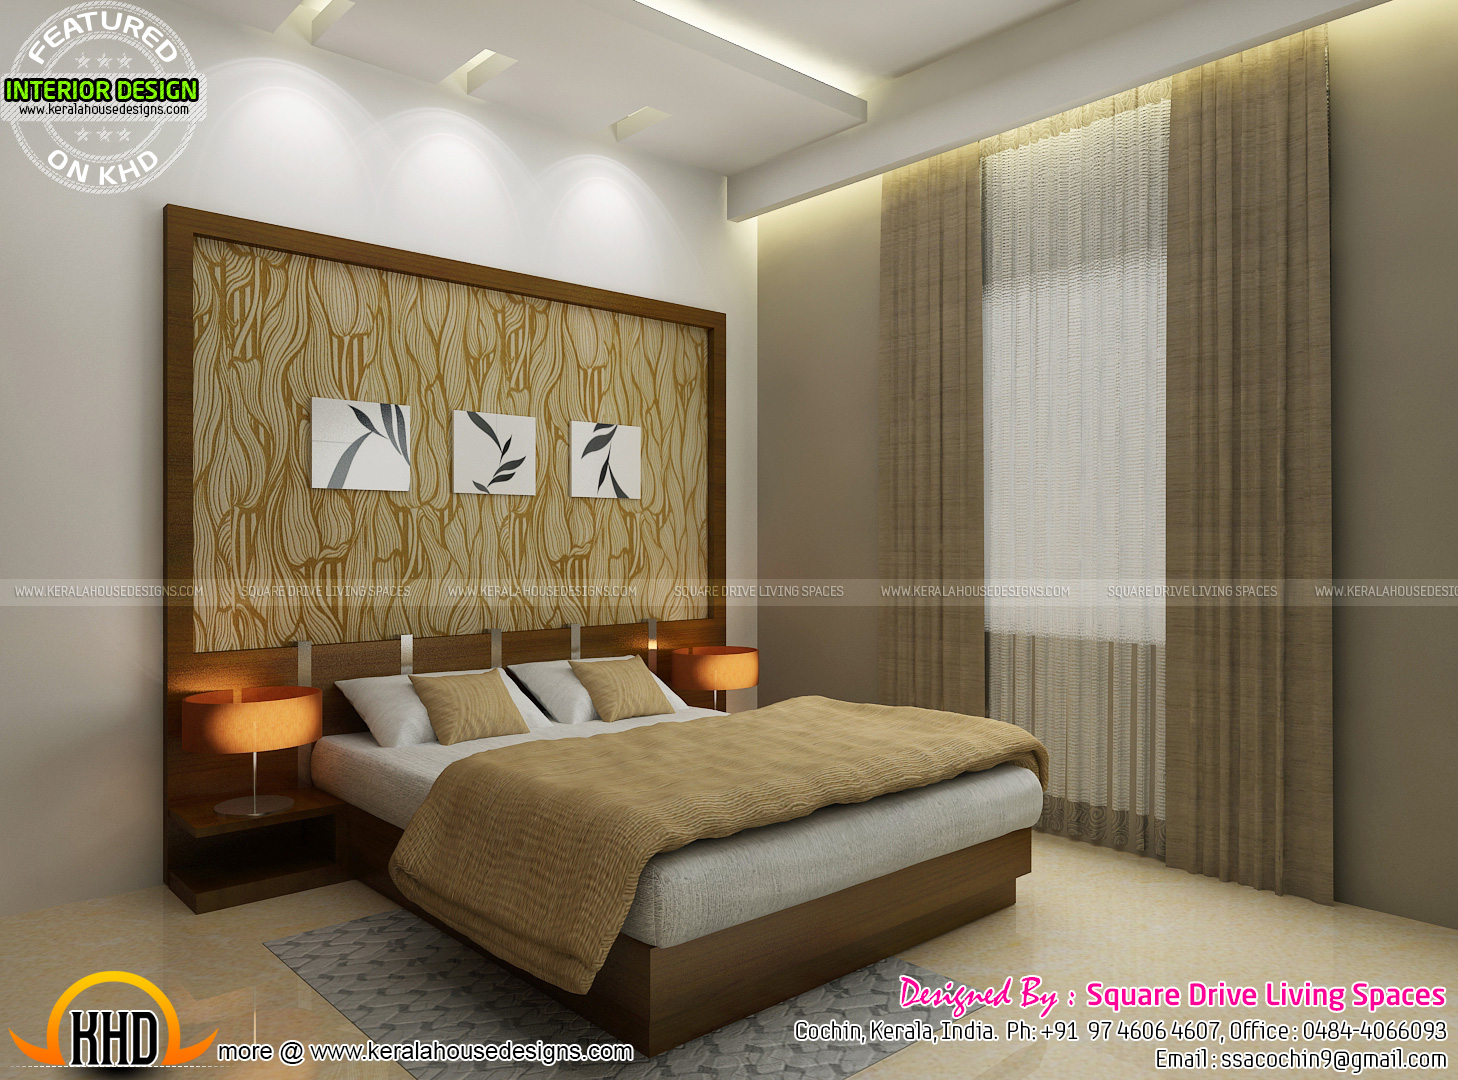 Interior designs of master bedroom living kitchen and for Interior design styles master bedroom